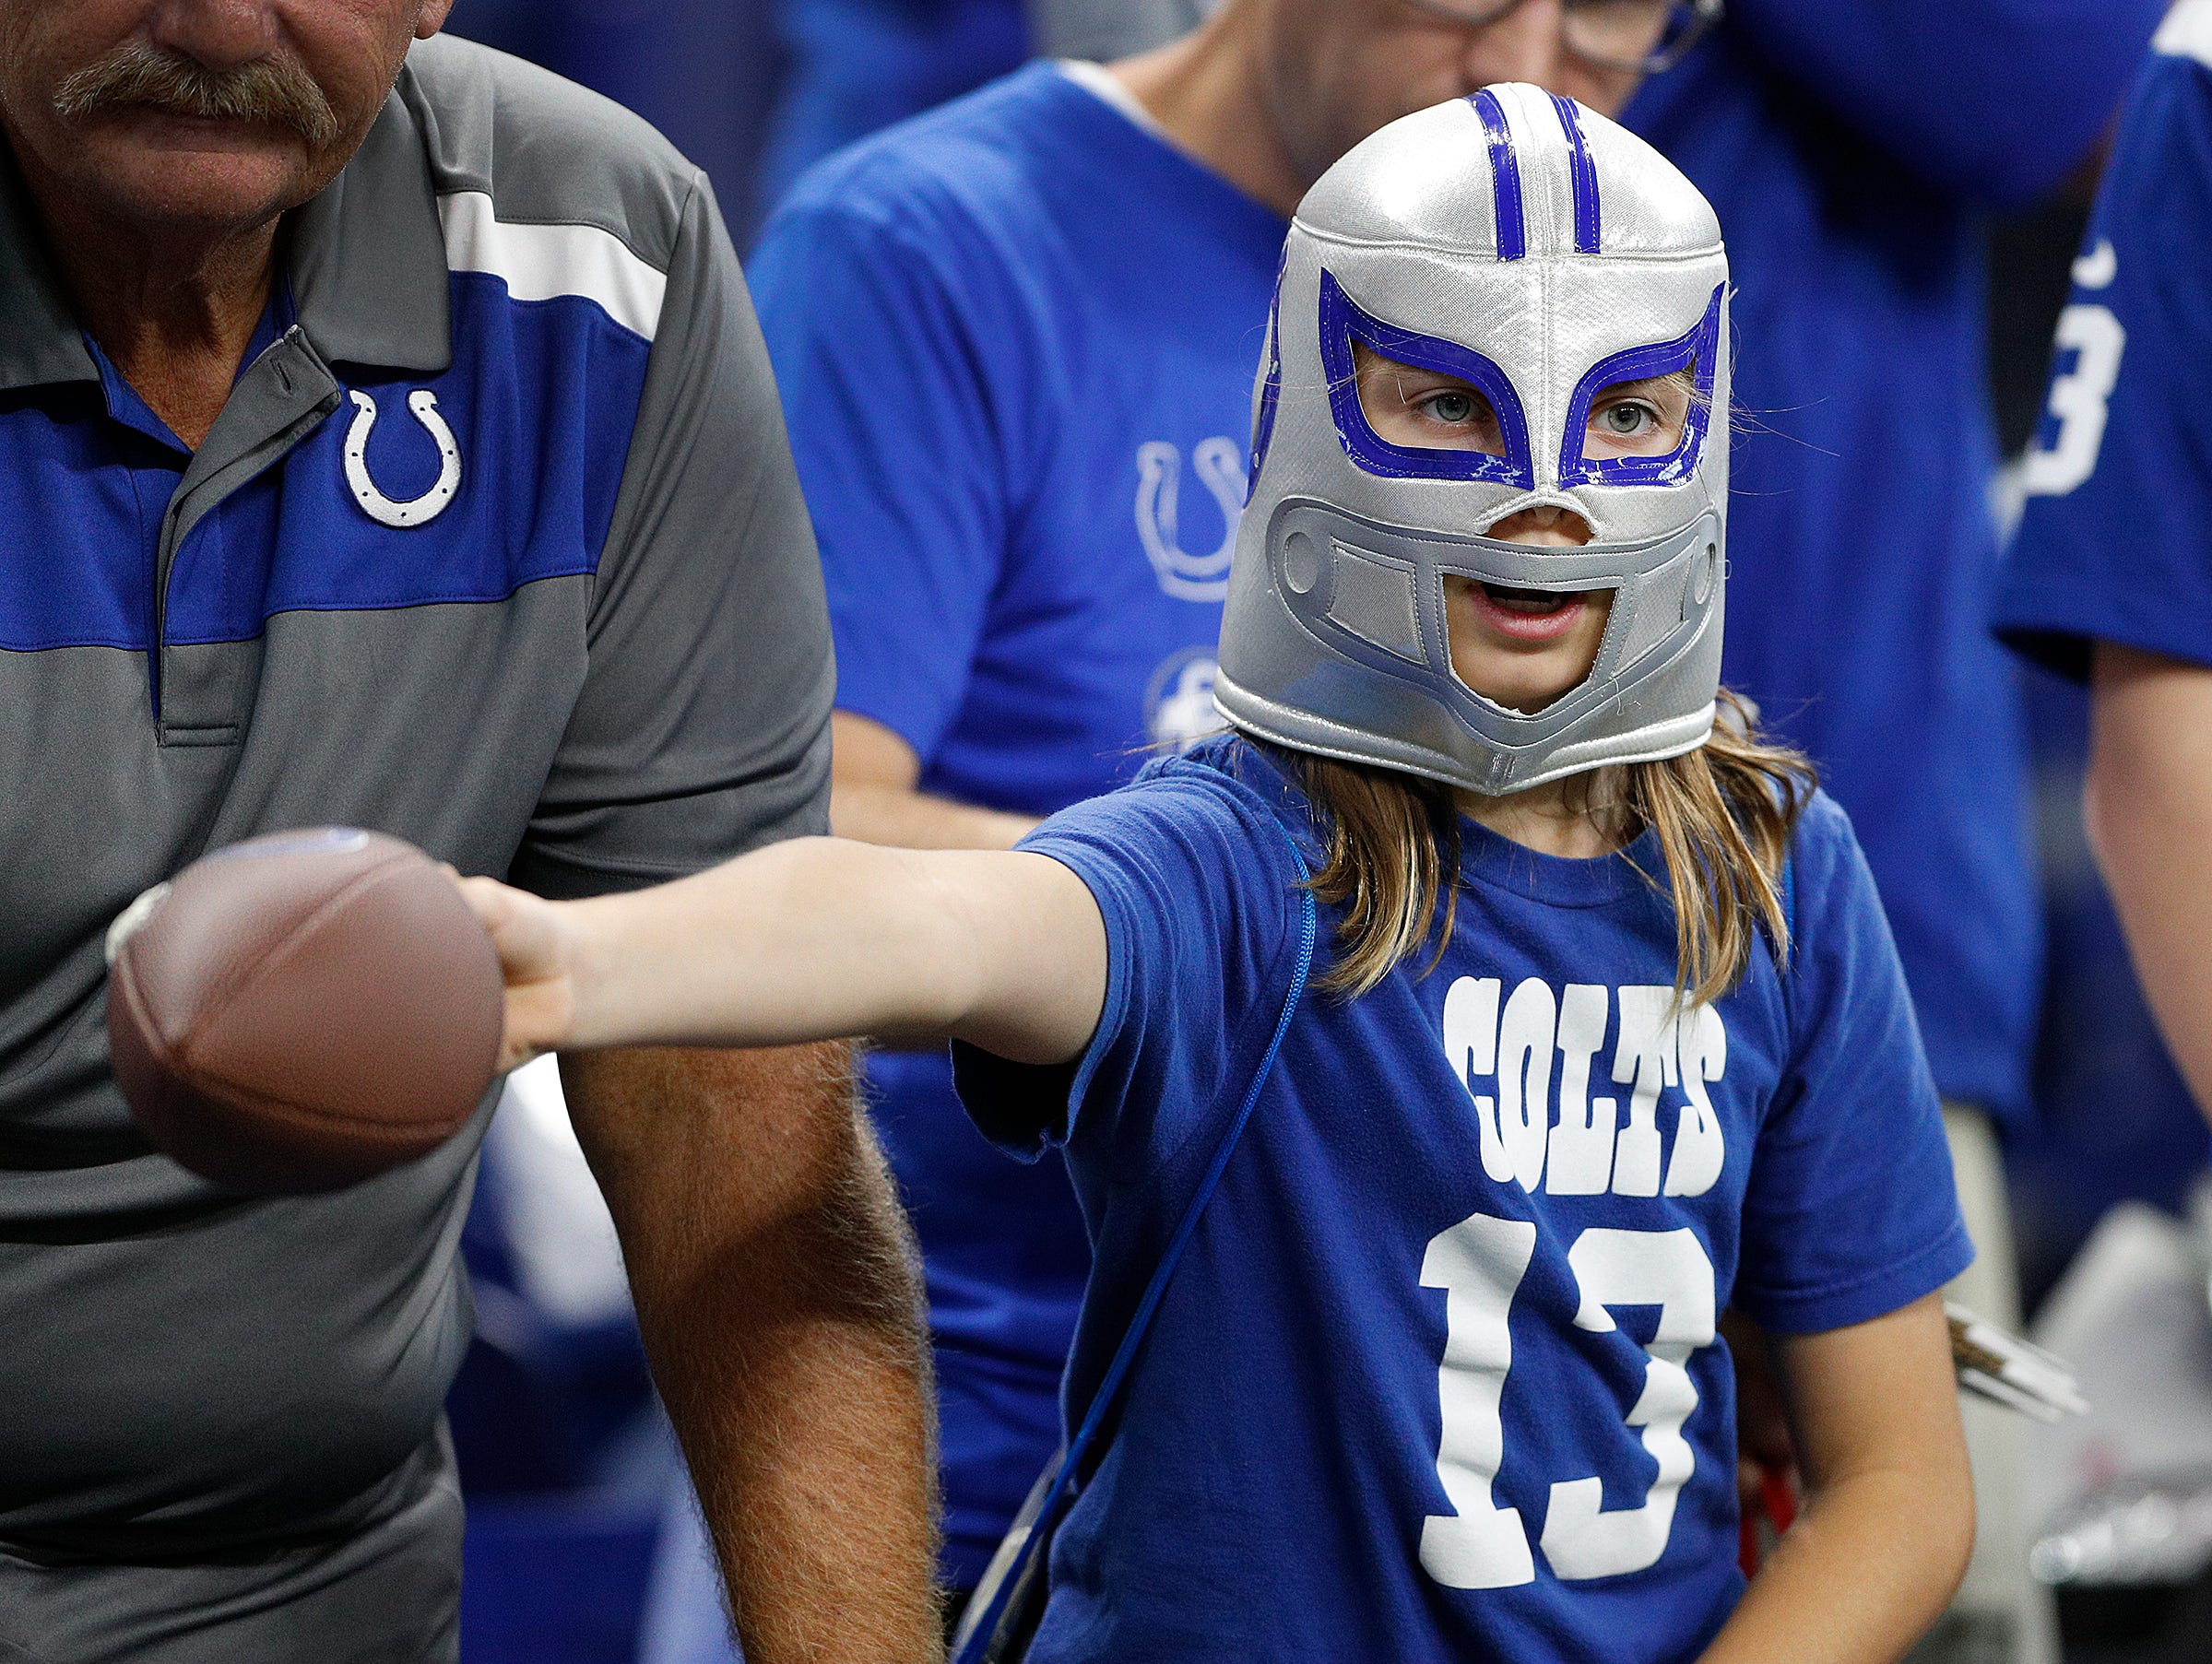 An Indianapolis Colts fan looks for autographs before the the start of the Indianapolis Colts game against the San Francisco 49ers at Lucas Oil Stadium Saturday, August 25, 2018.